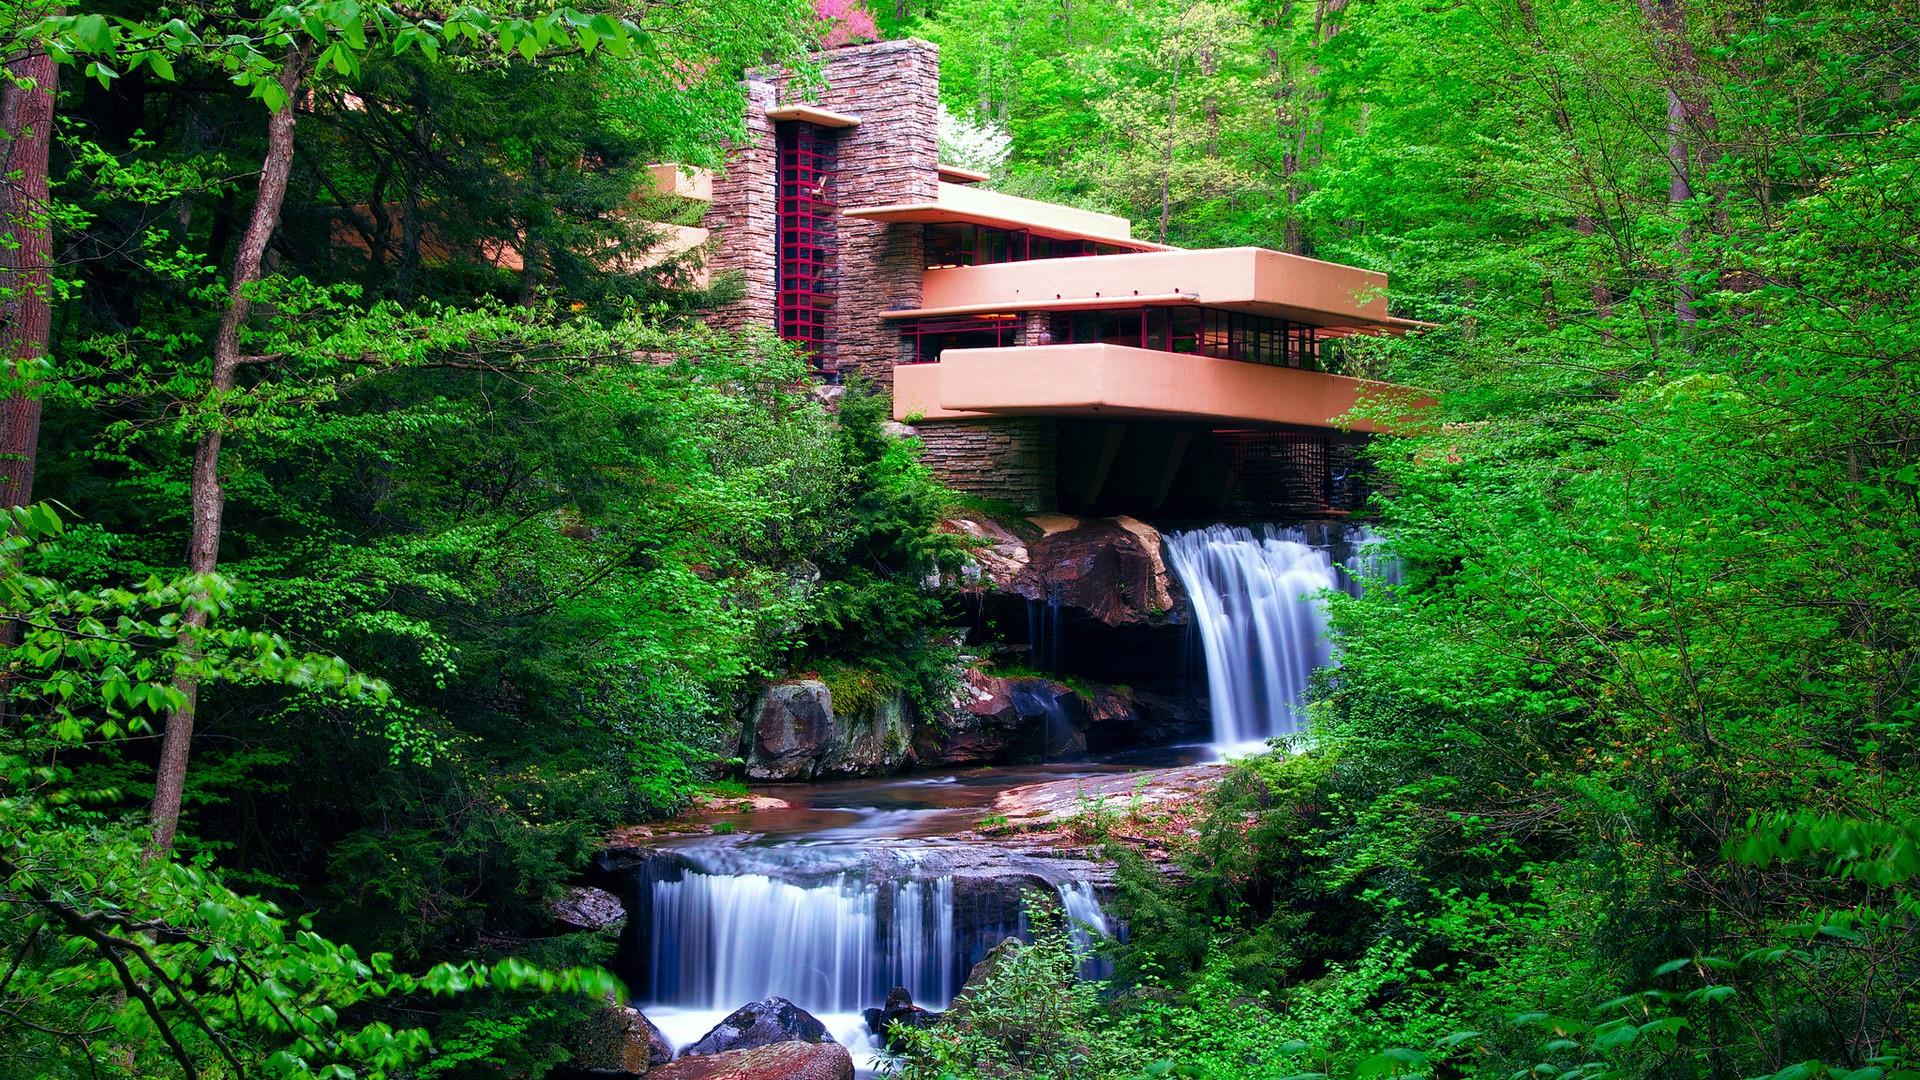 Fall in love with the Fallingwater.